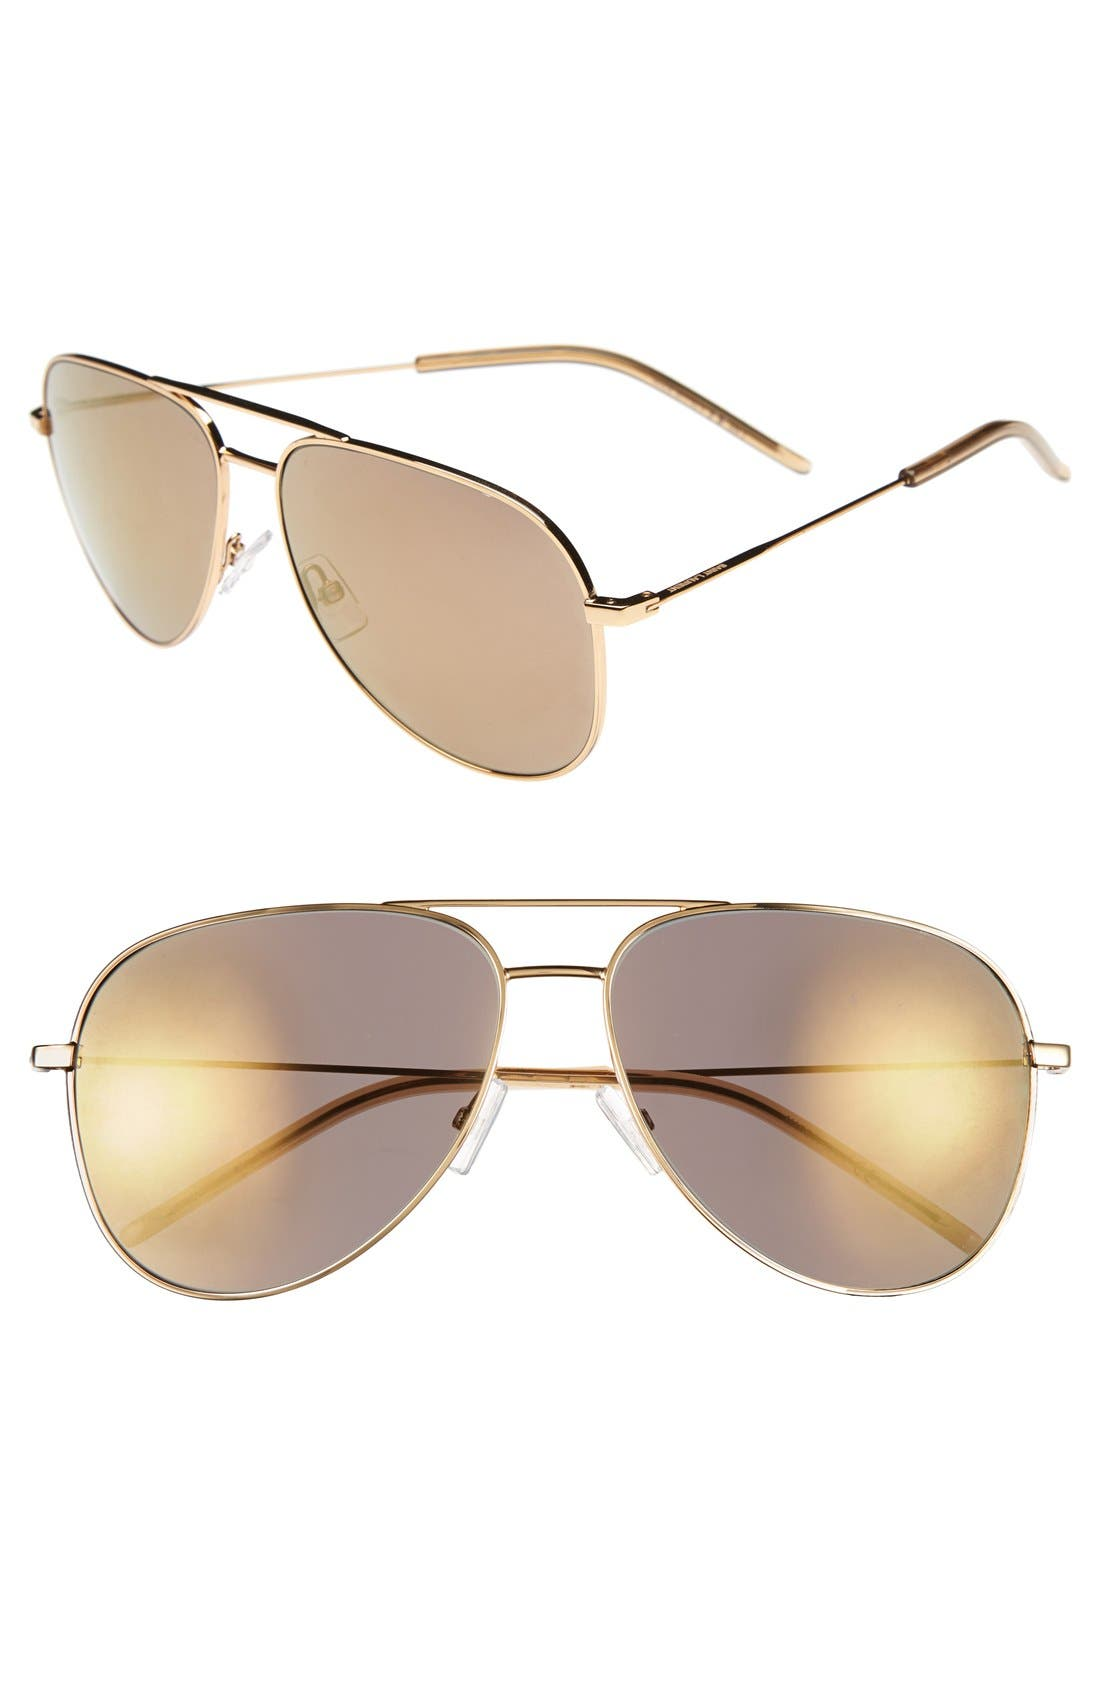 Main Image - Saint Laurent 59mm Aviator Sunglasses